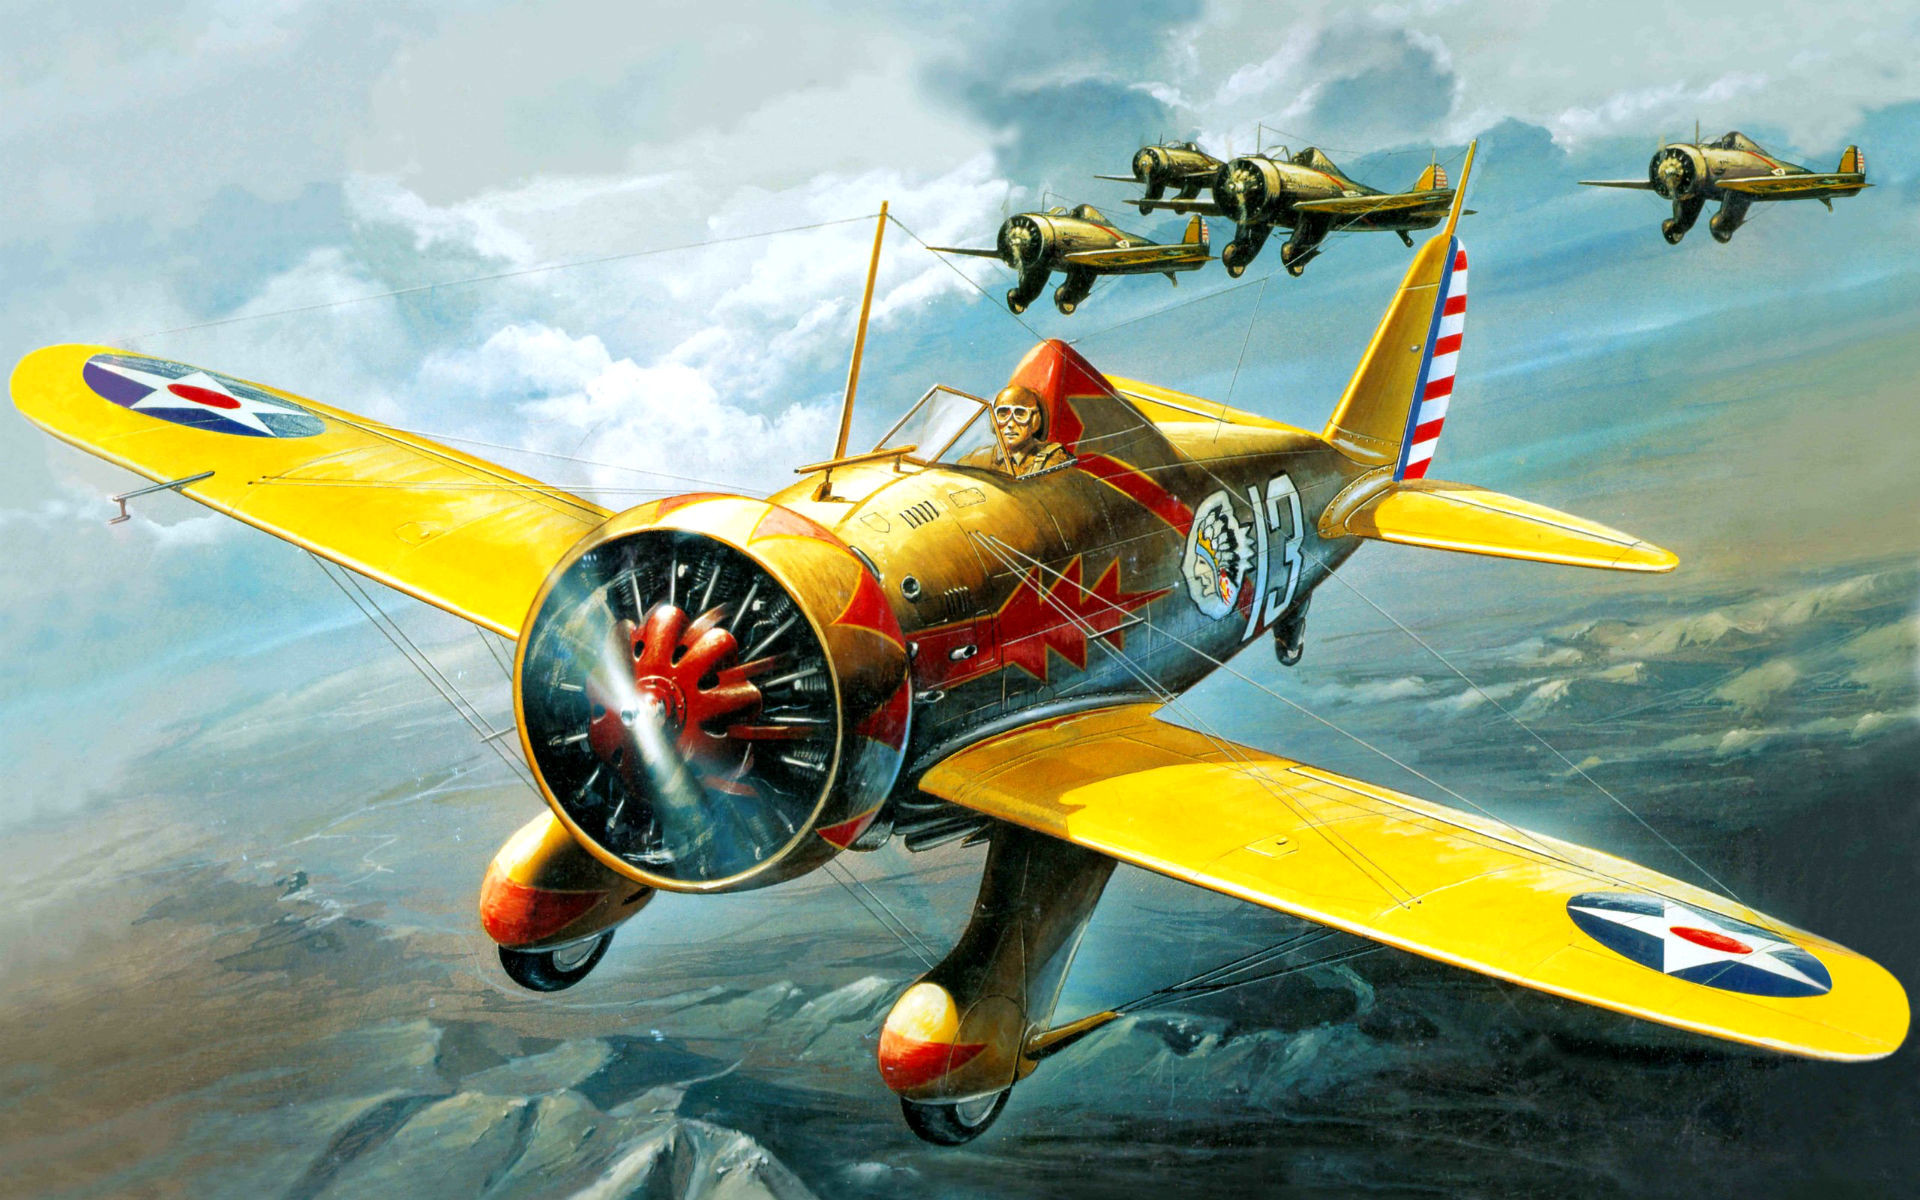 1920x1200 art airplane Boeing P-26A Peashooter military flight pilot cockpit sky  clouds landscapes wallpaper